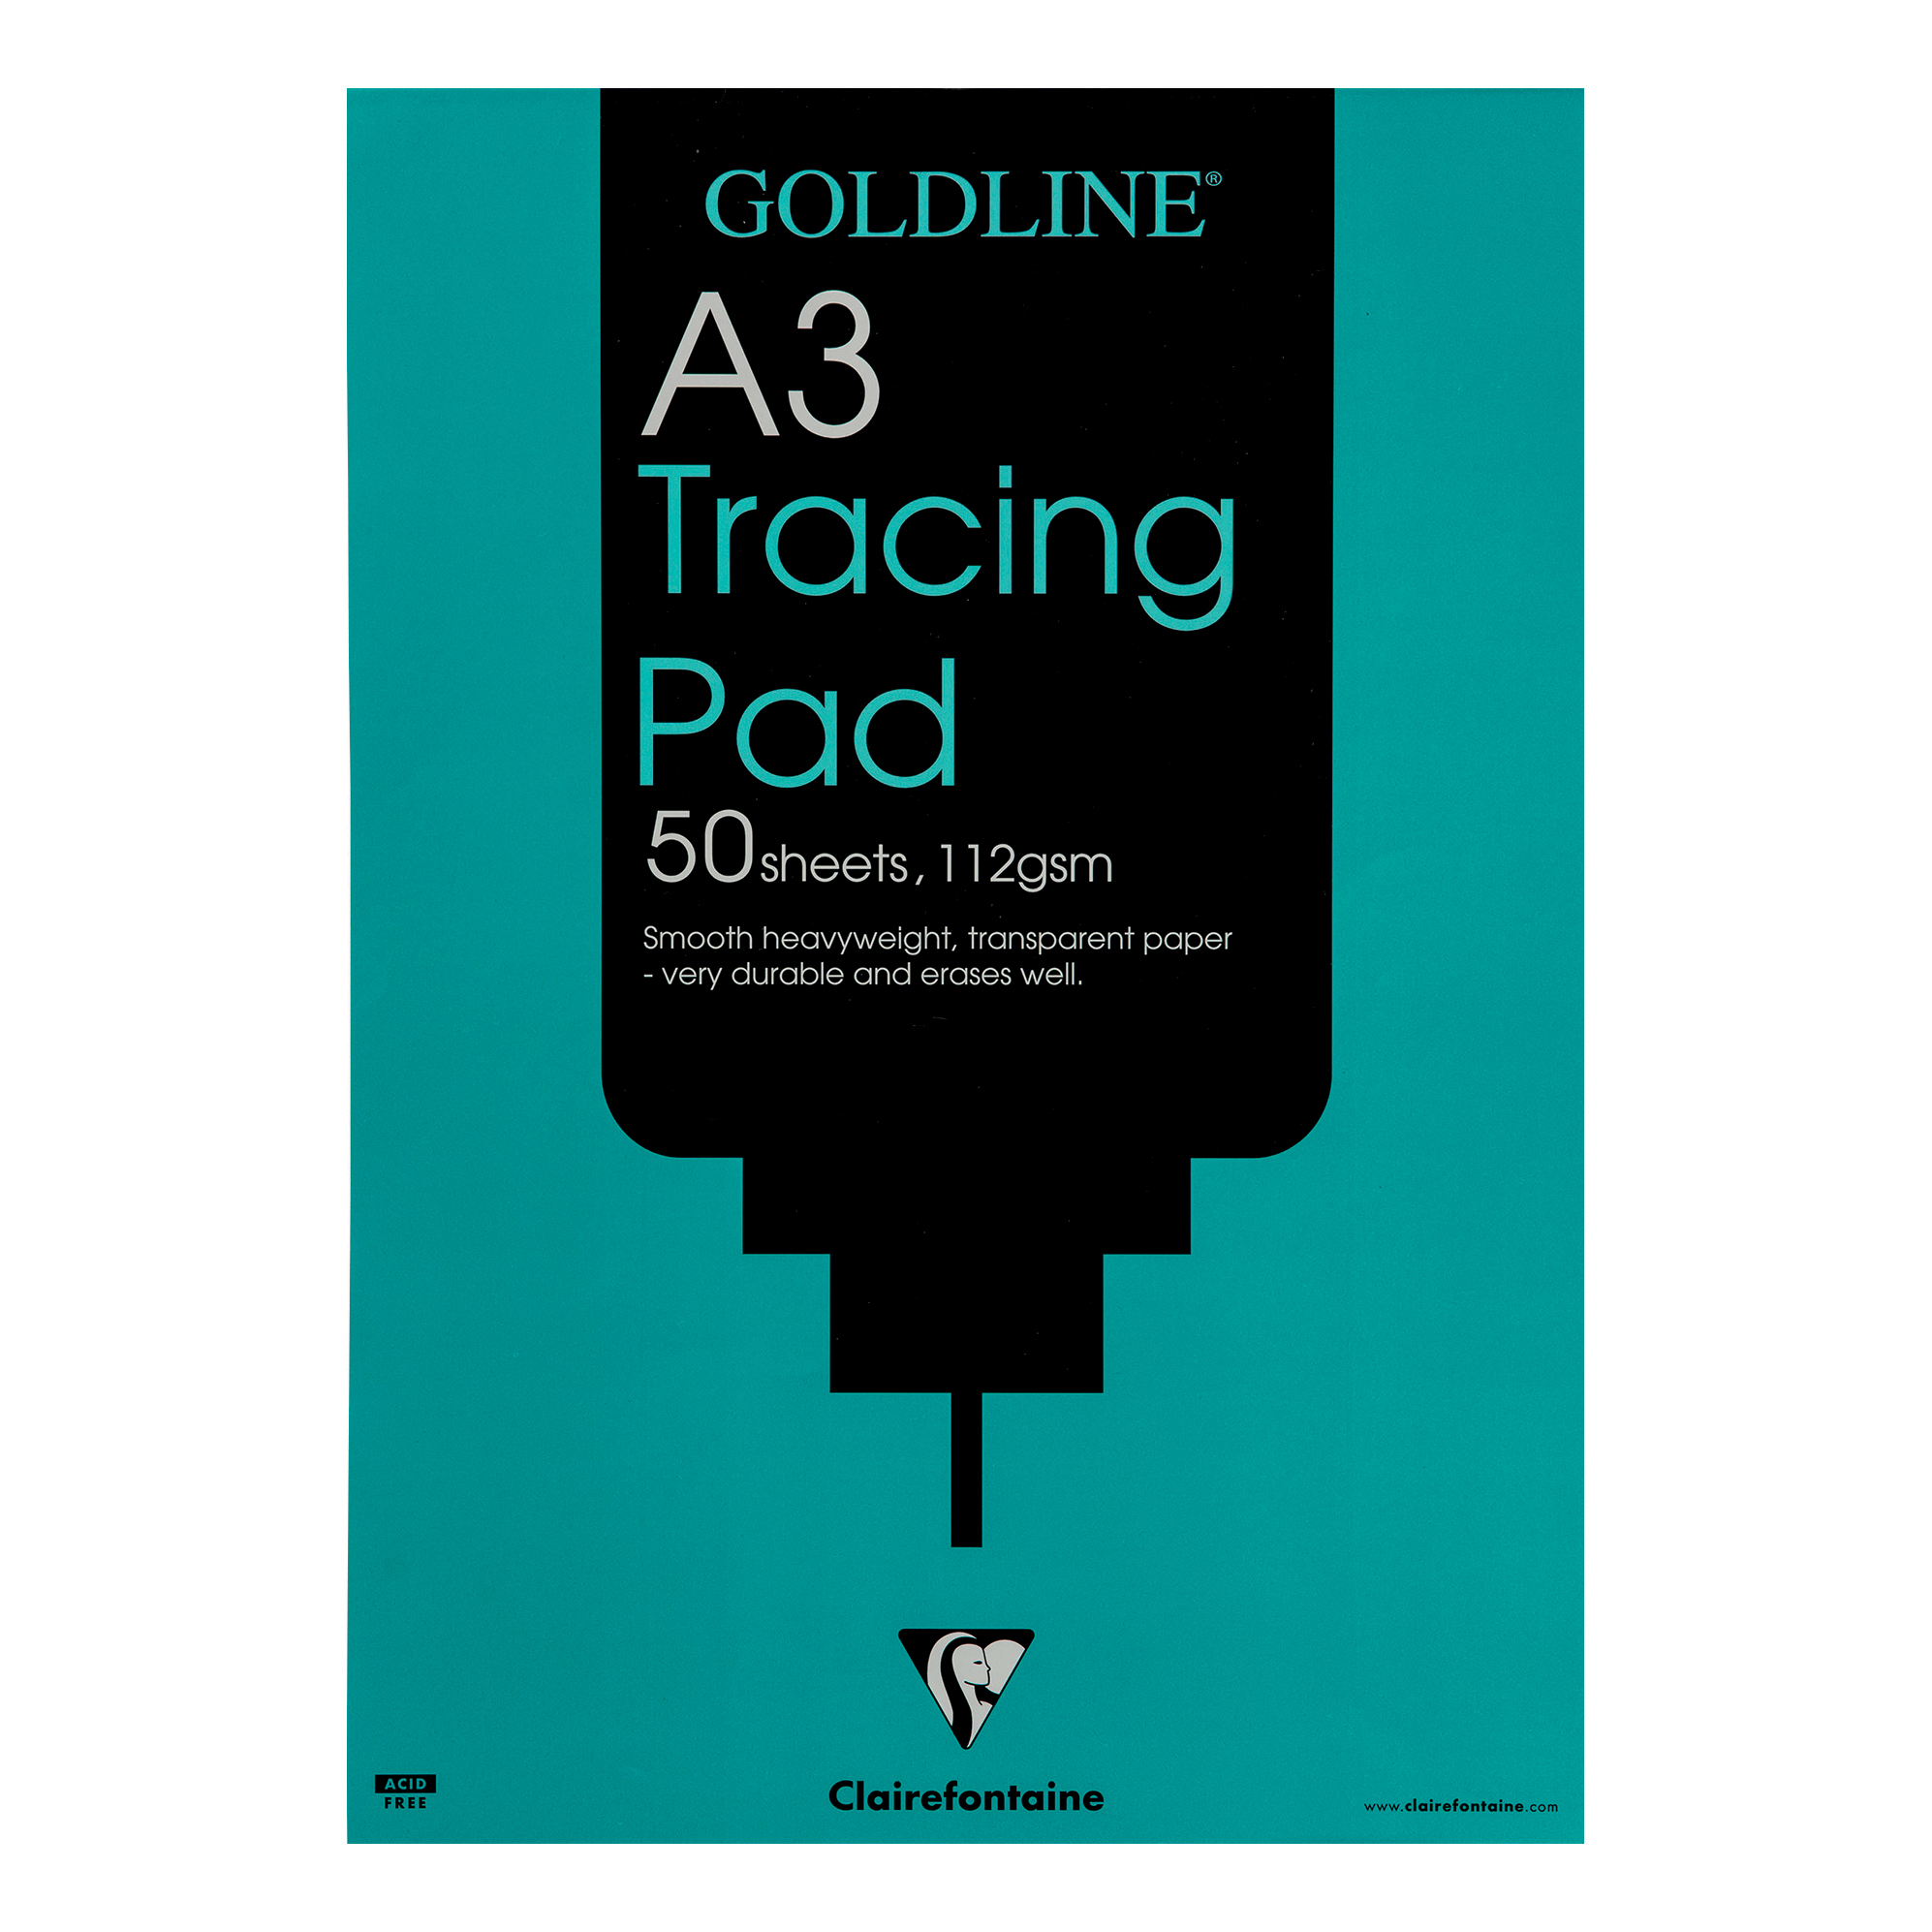 Goldline Heavyweight Tracing Pad 112gsm Acid-free Paper 50 Sheets A3 Ref GPT3A3Z Pack 5